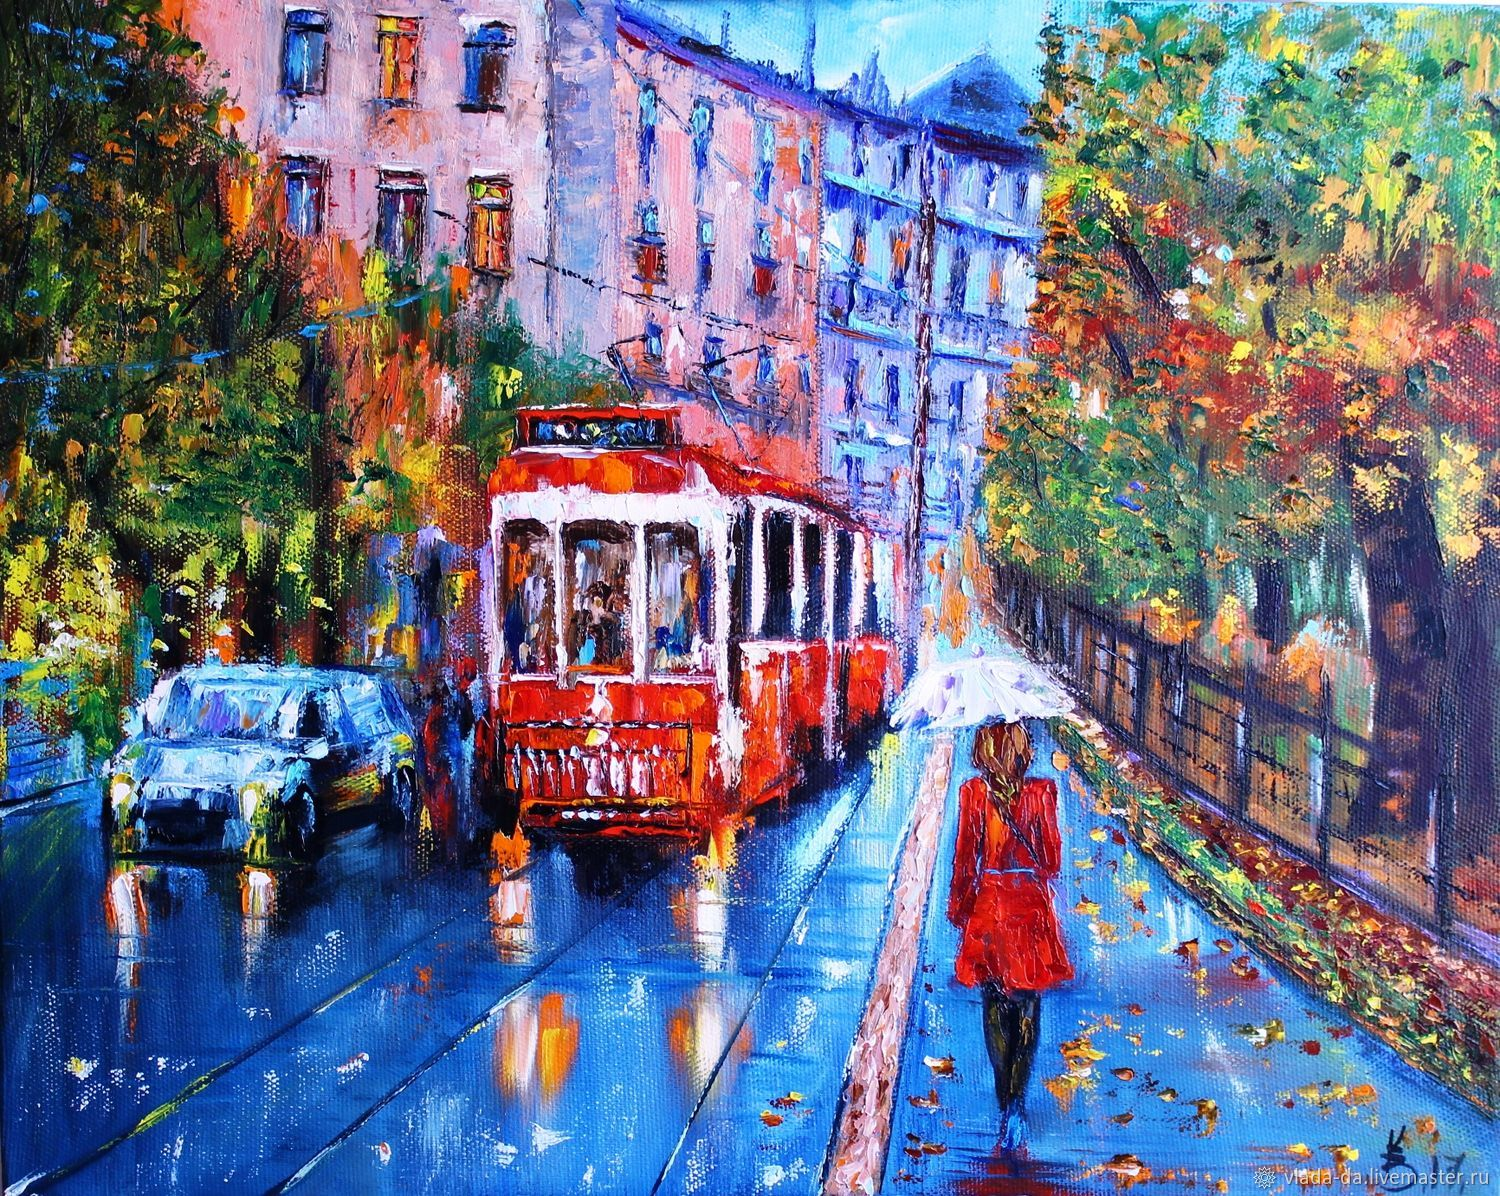 Oil painting of the St. Petersburg tram, Pictures, Moscow,  Фото №1